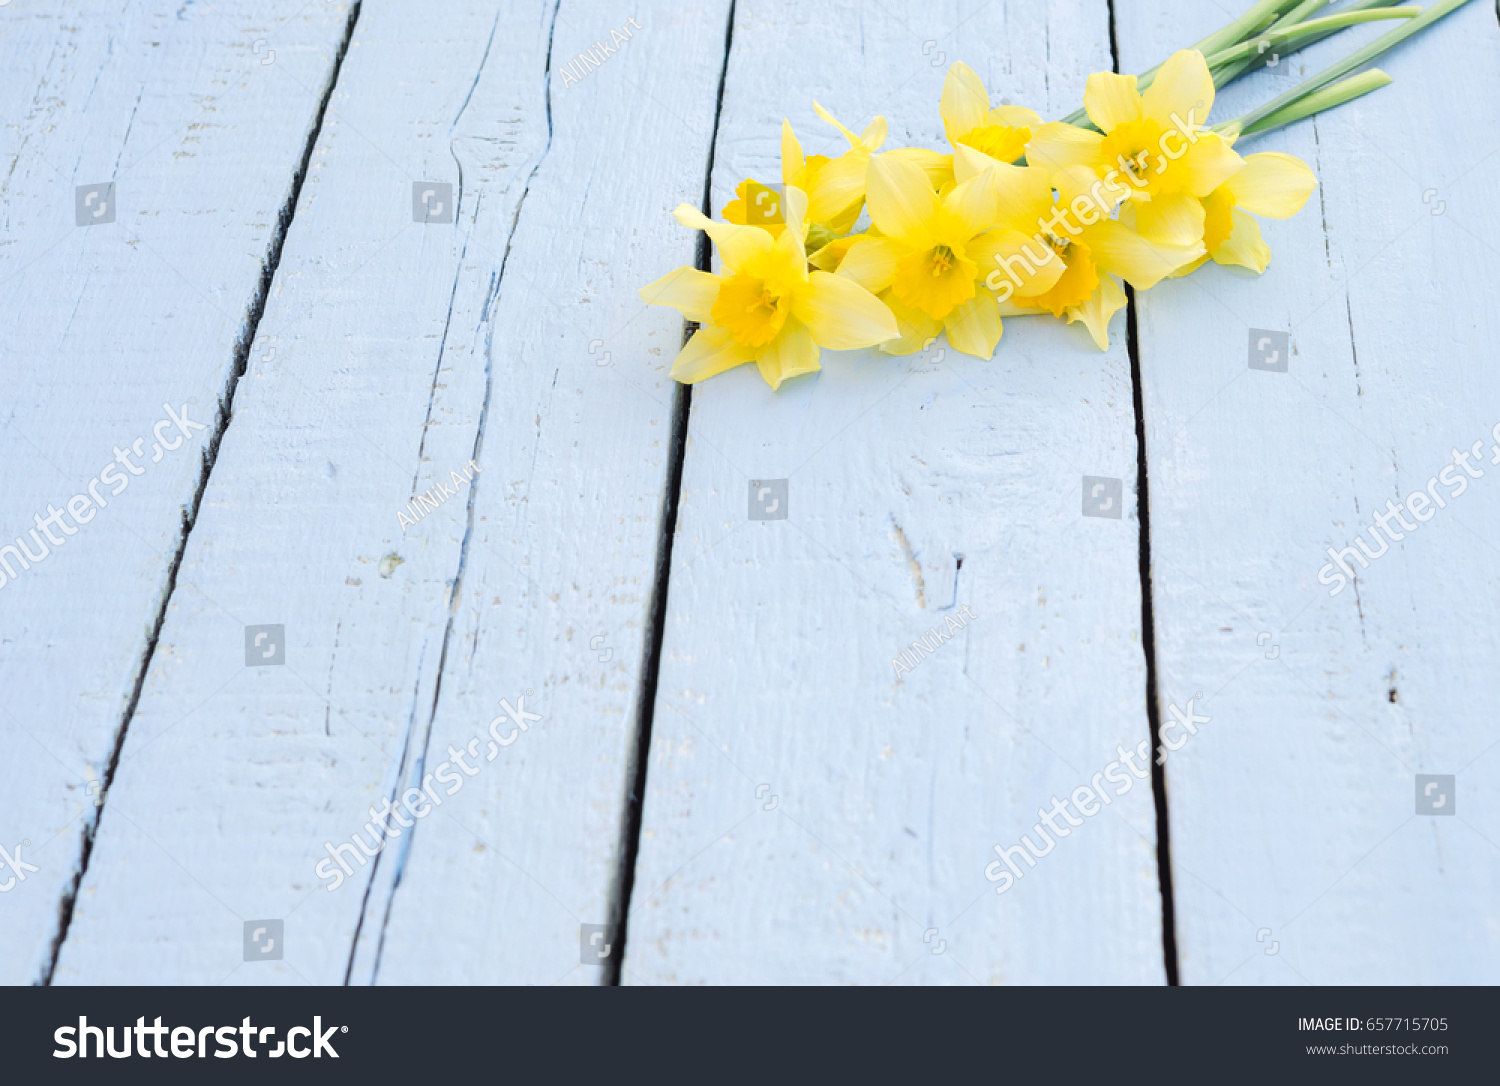 Flower Daffodil Spring Flowers Narcissus On Stock Photo Edit Now